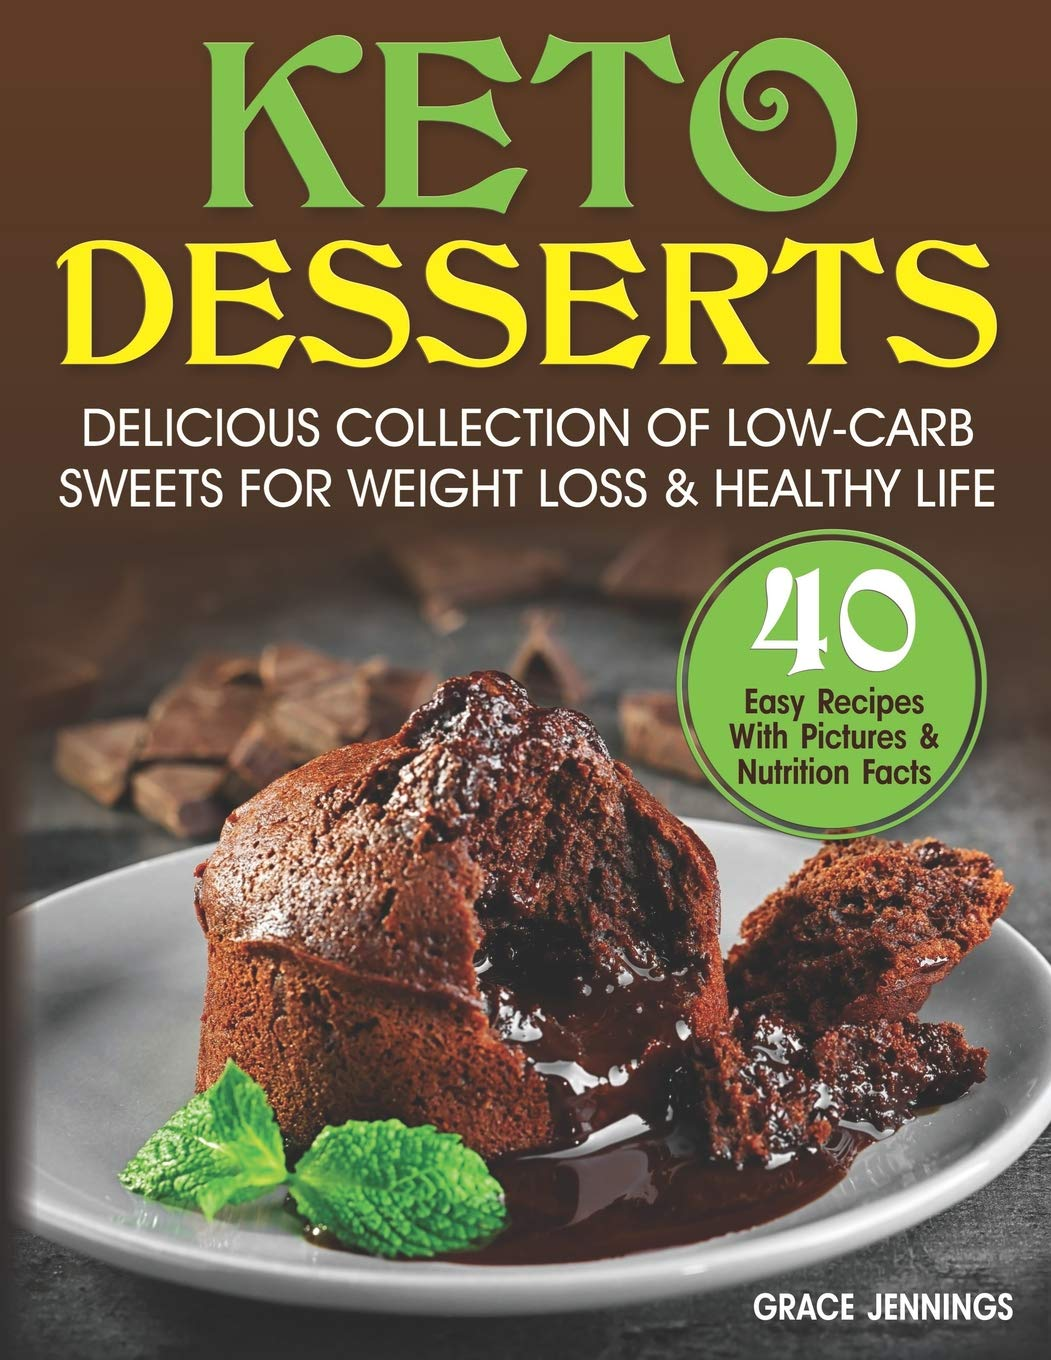 Buy Keto Sweets Keto-Friendly Dessert Recipes Colors Reddit